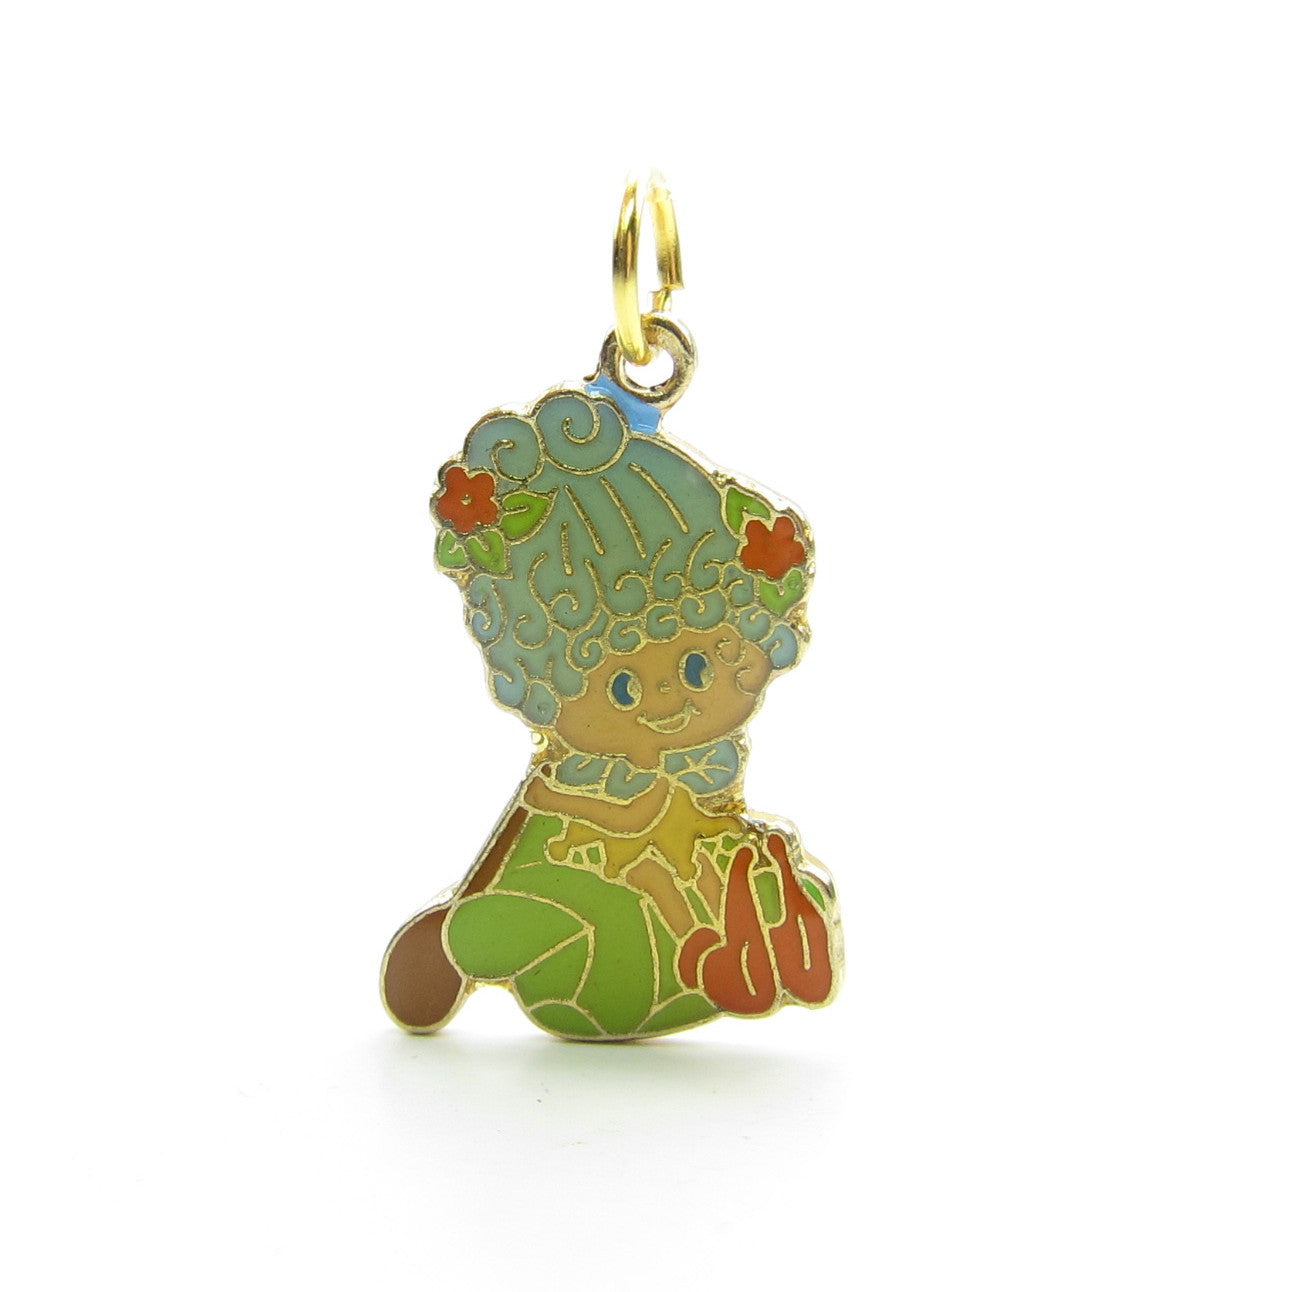 Willow Song charm or pendant Herself the Elf jewelry